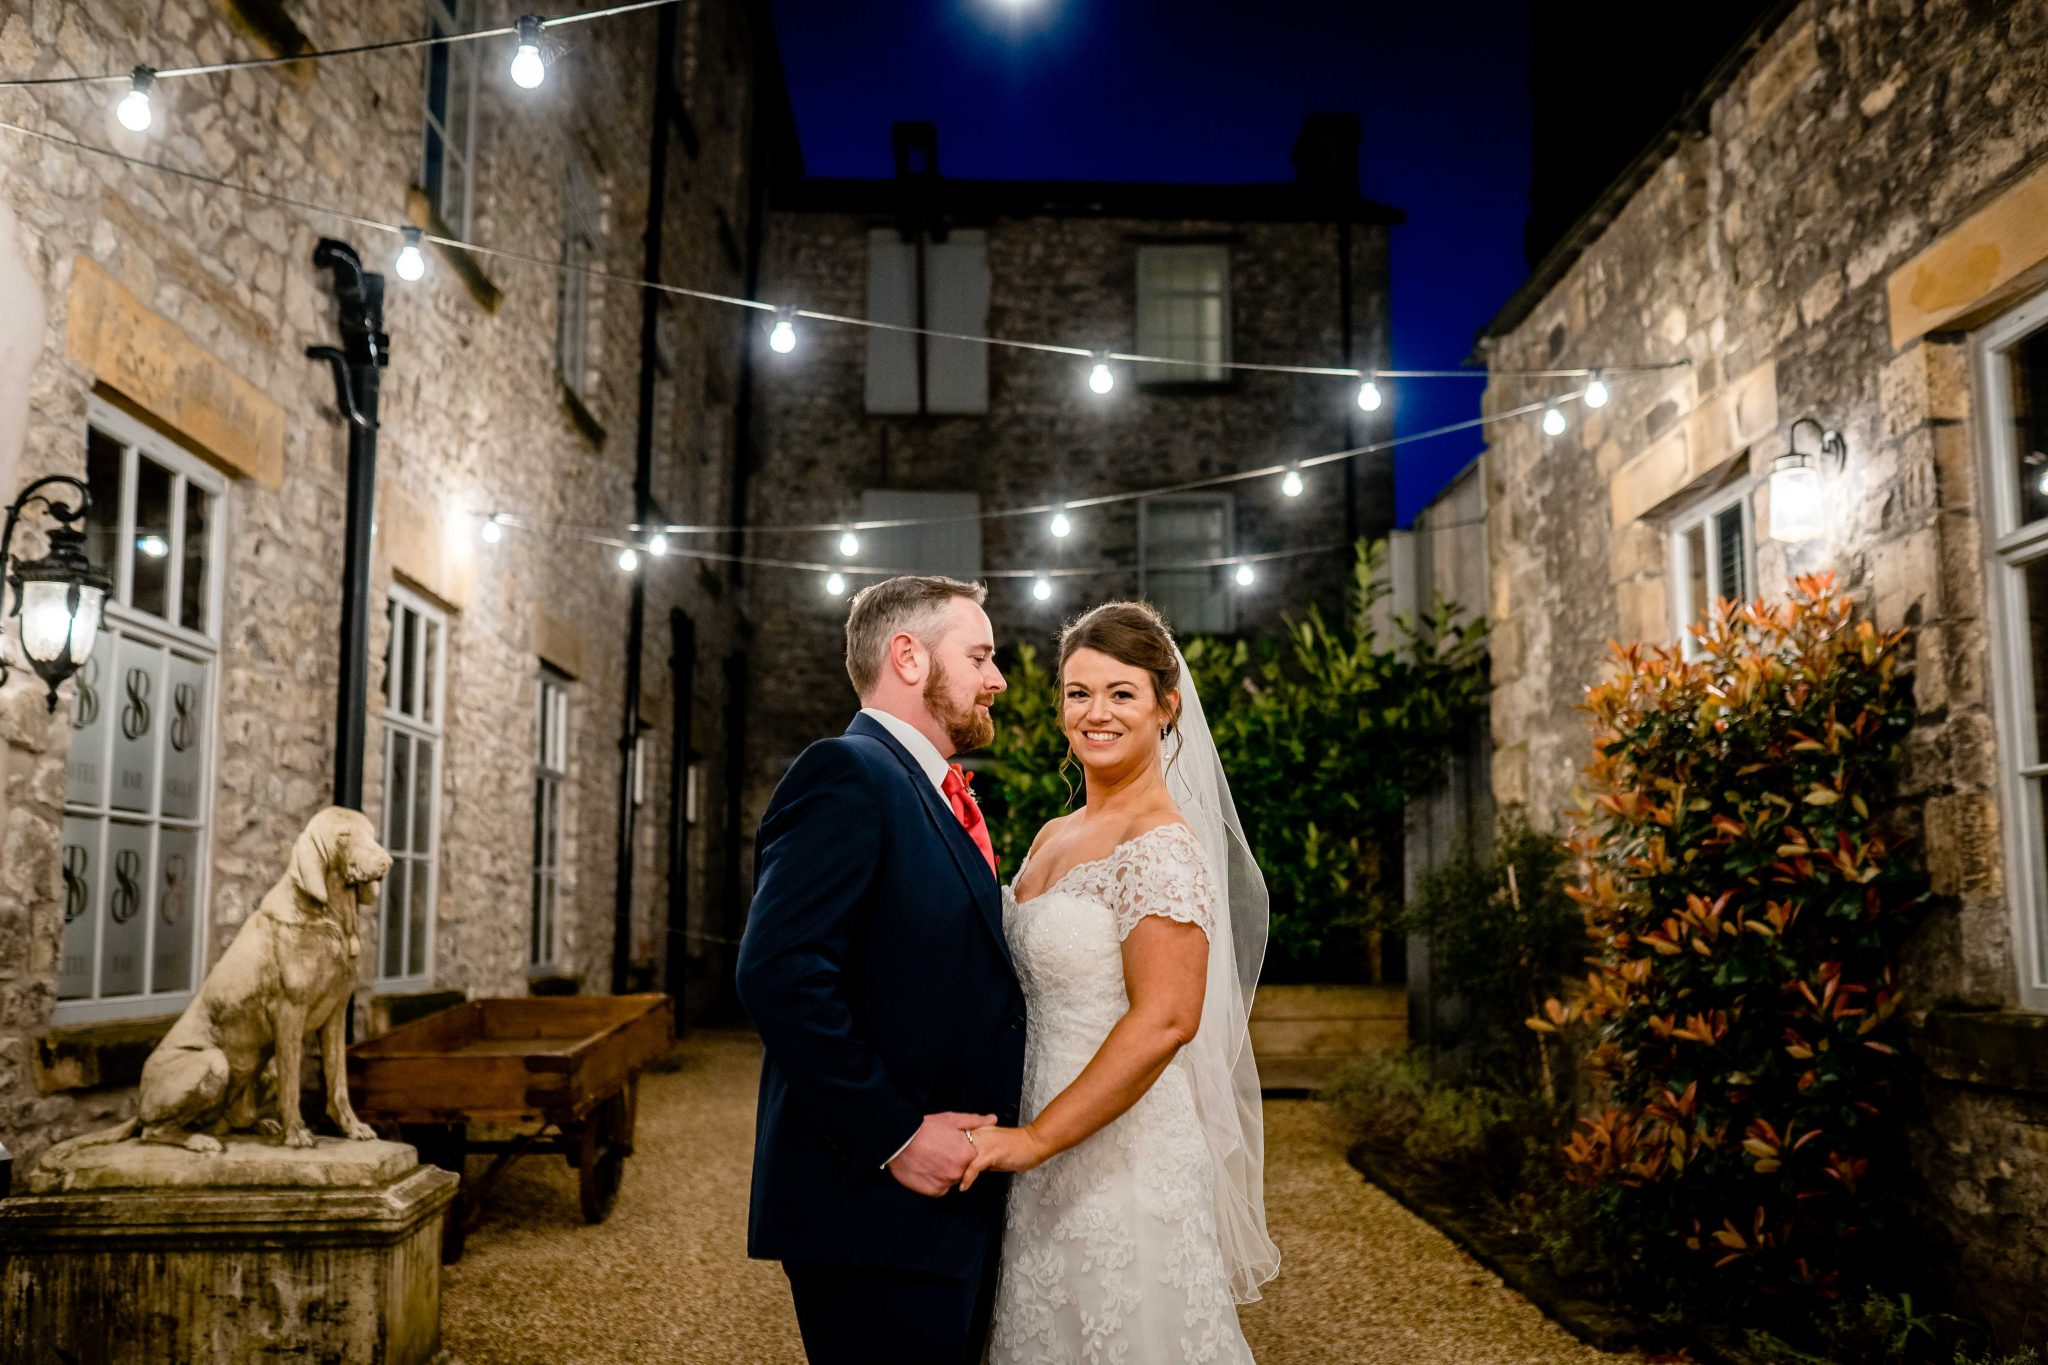 Holmes Mill Wedding Clitheroe Ollie Gyte Photography 2020